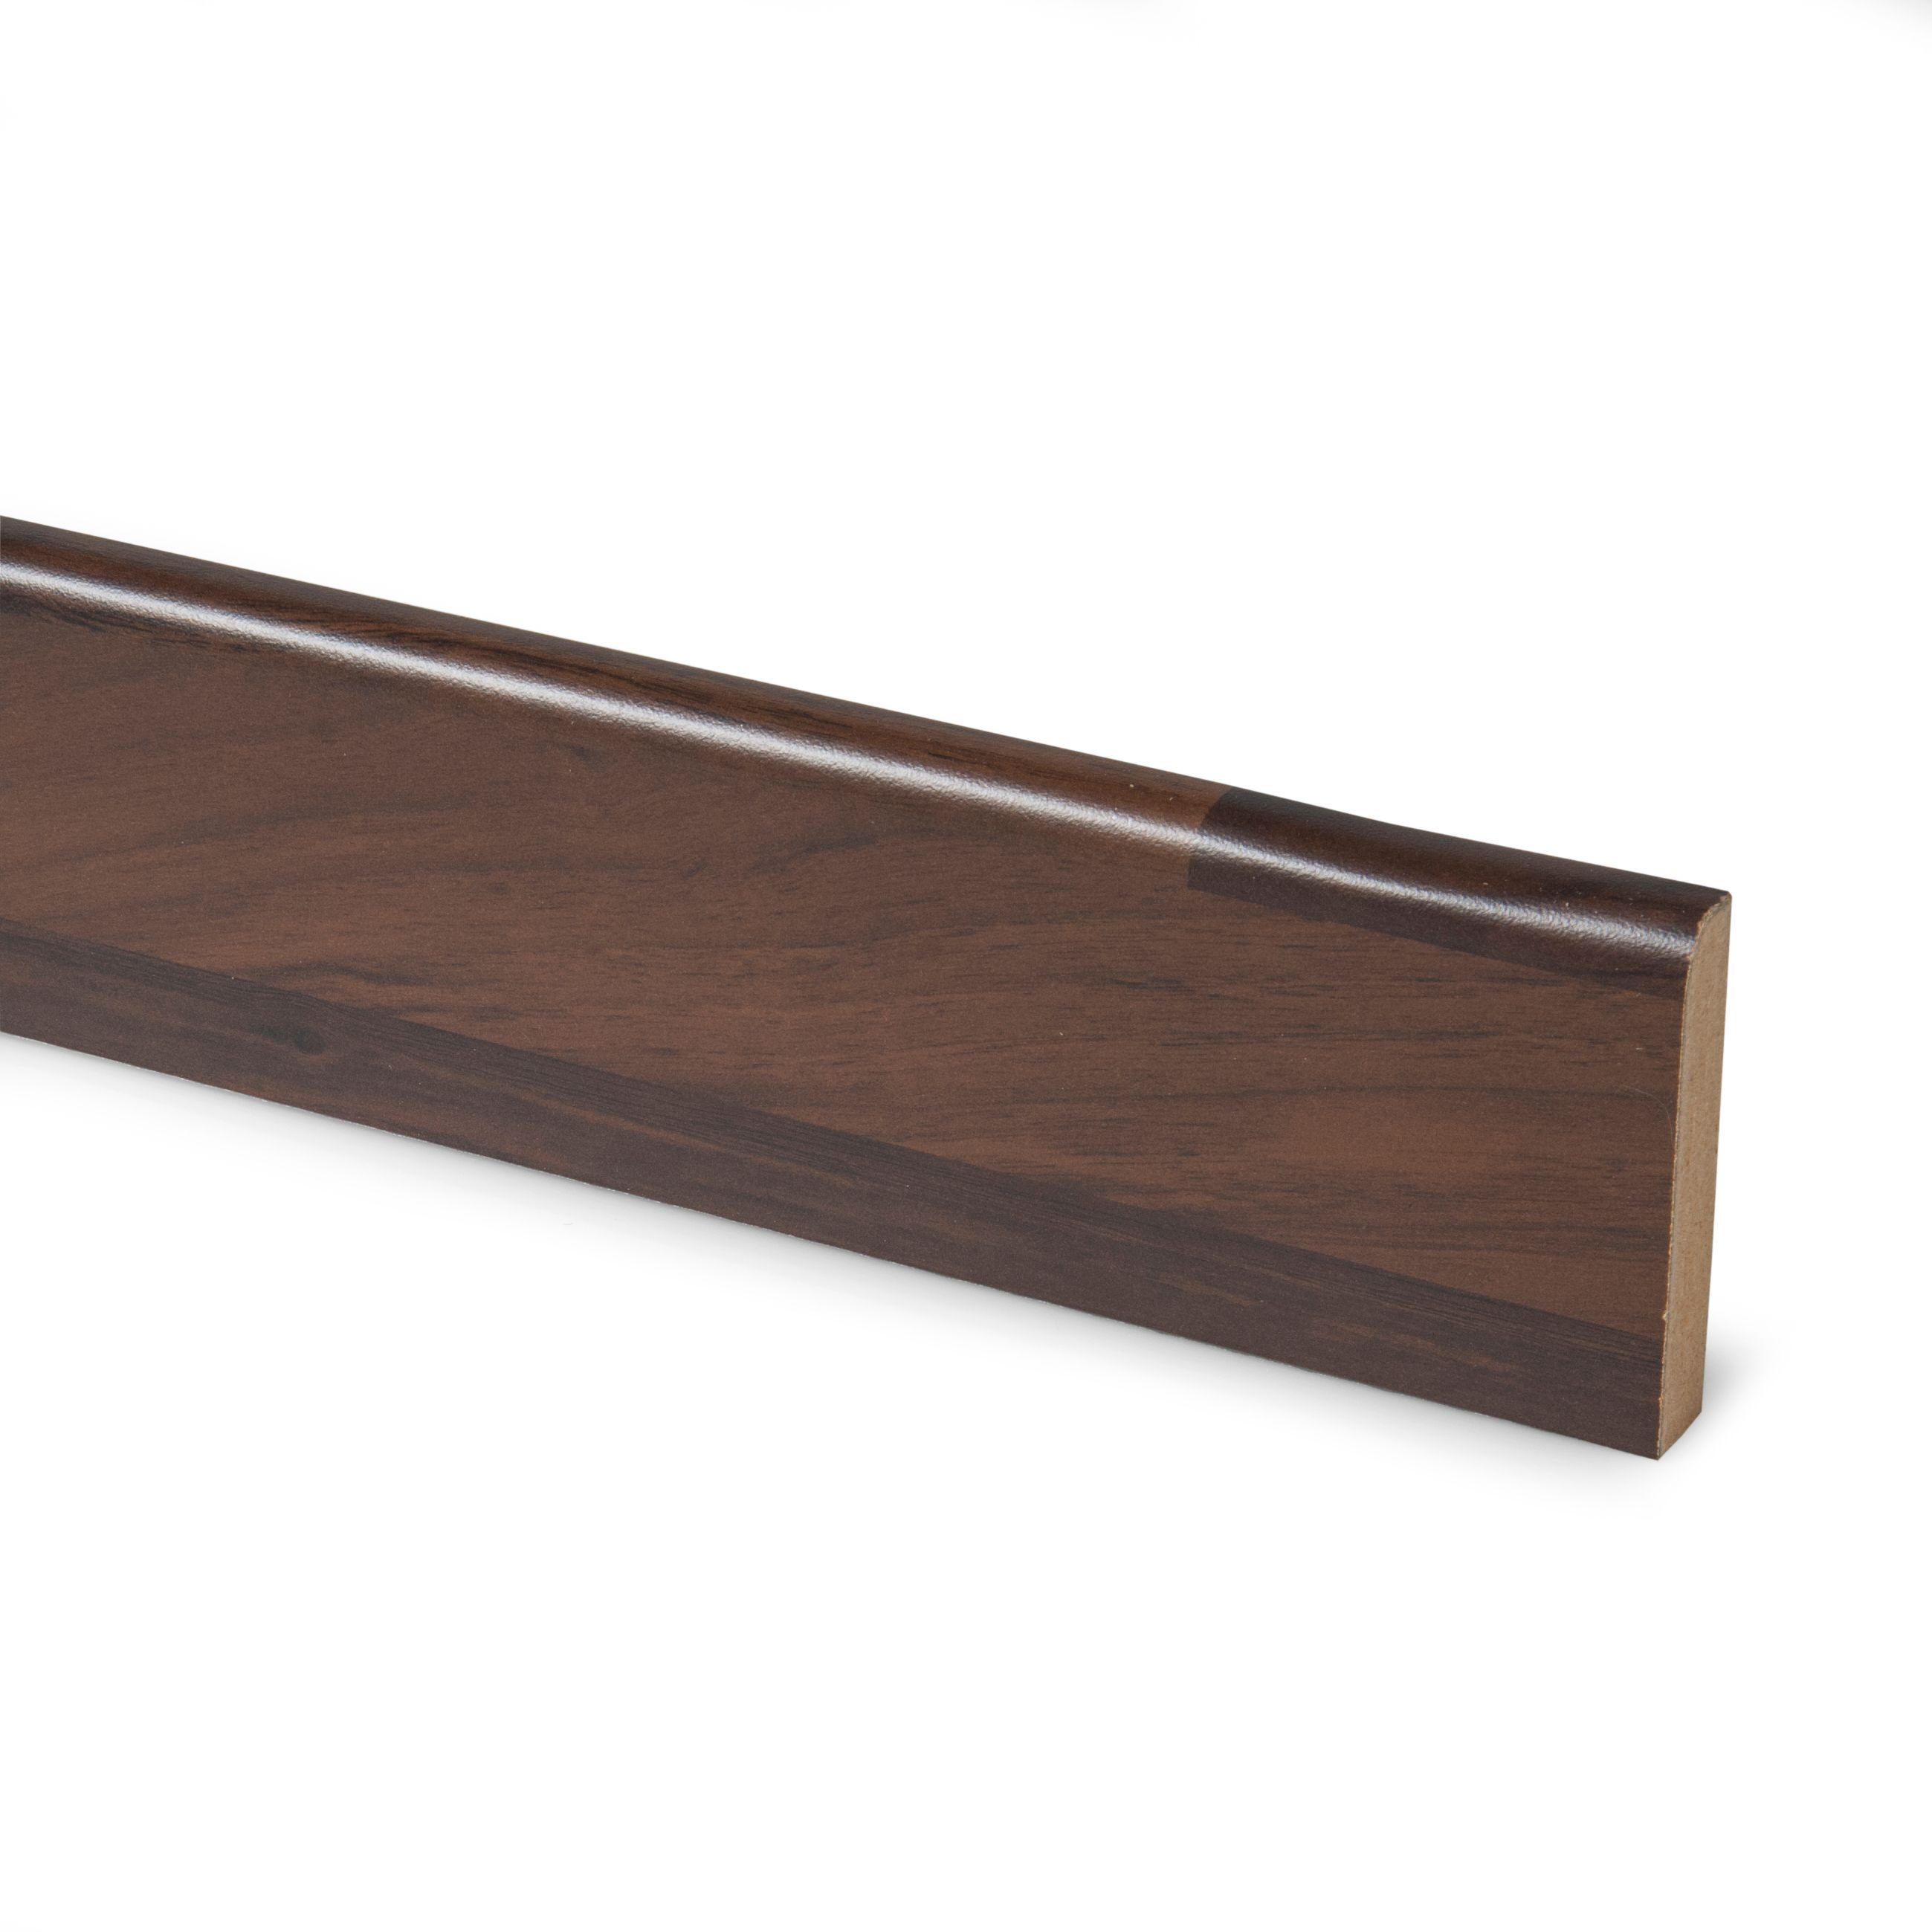 12mm walnut butchers block laminate upstand departments